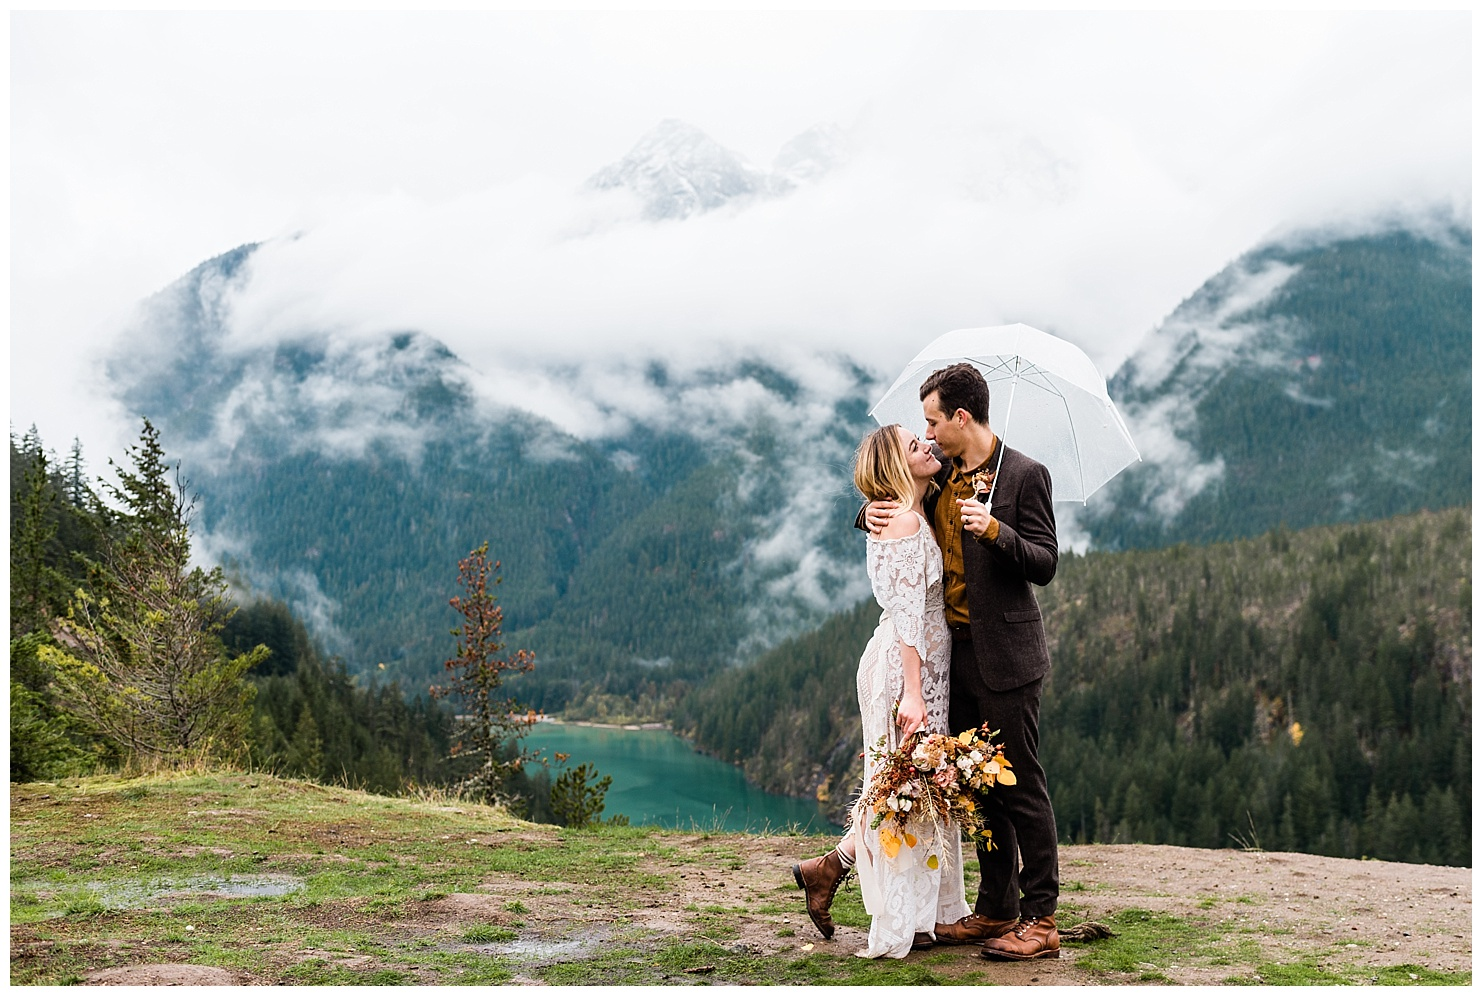 PNW Elopement by Forthright Photo, pnw wedding & elopement photographers